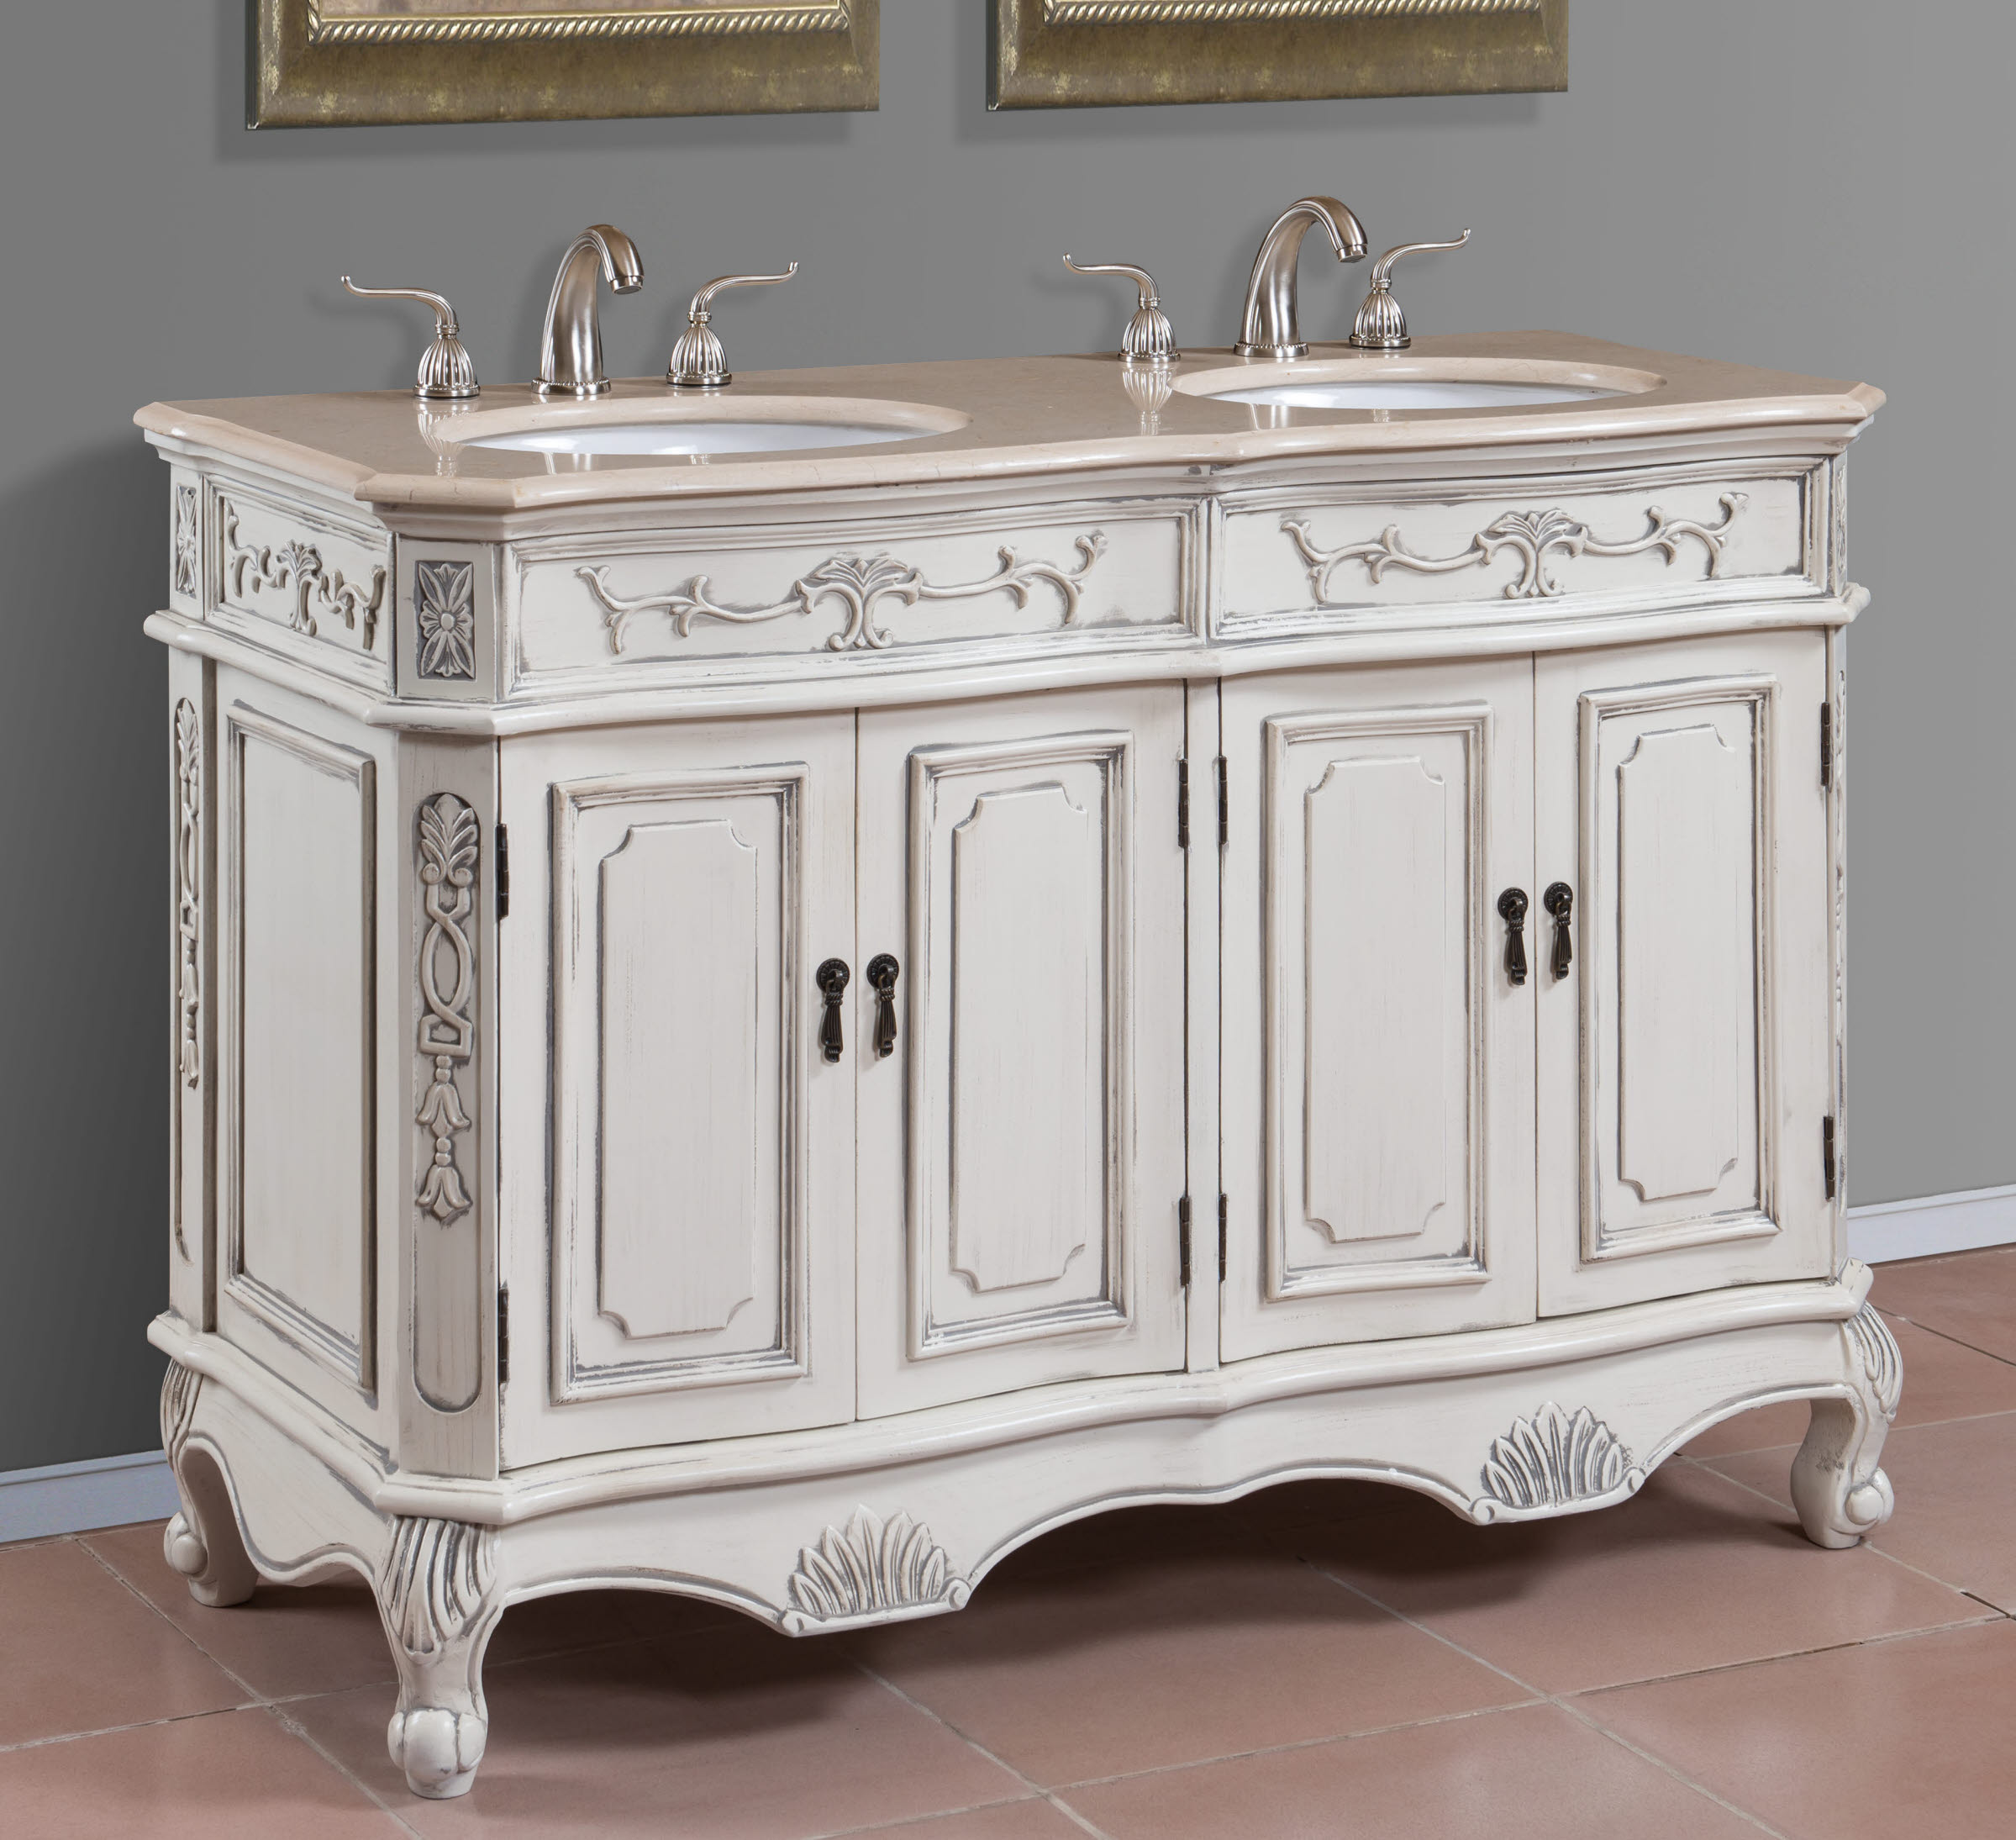 48 Inch Double Sink Bathroom Vanity - HomesFeed